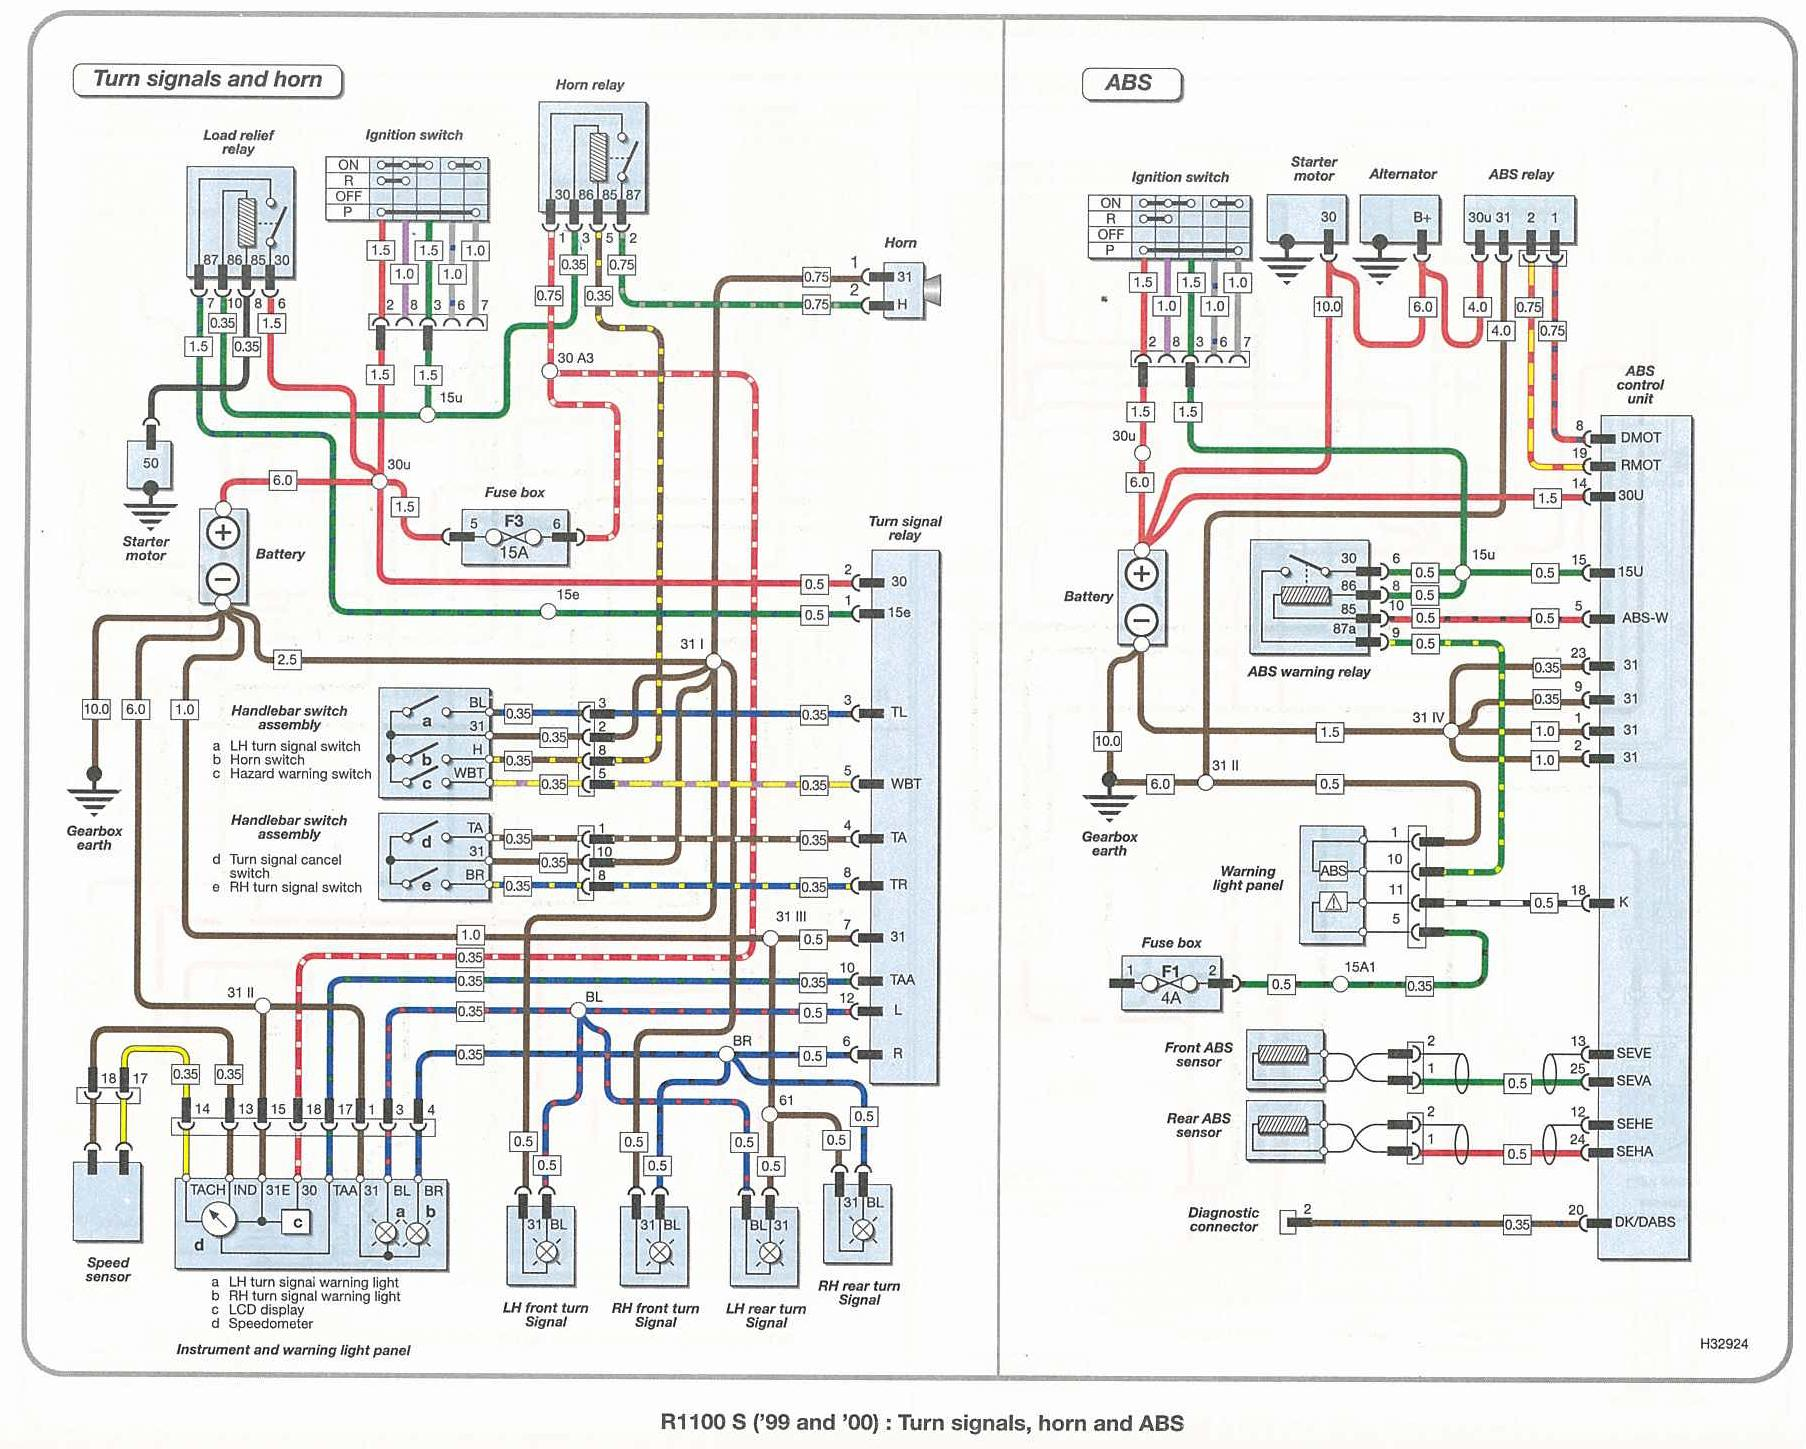 wiring03 100 [ wiring diagram bmw e70 ] x5 35d engine swap bimmerfest kk2 1 5 wiring diagram at honlapkeszites.co